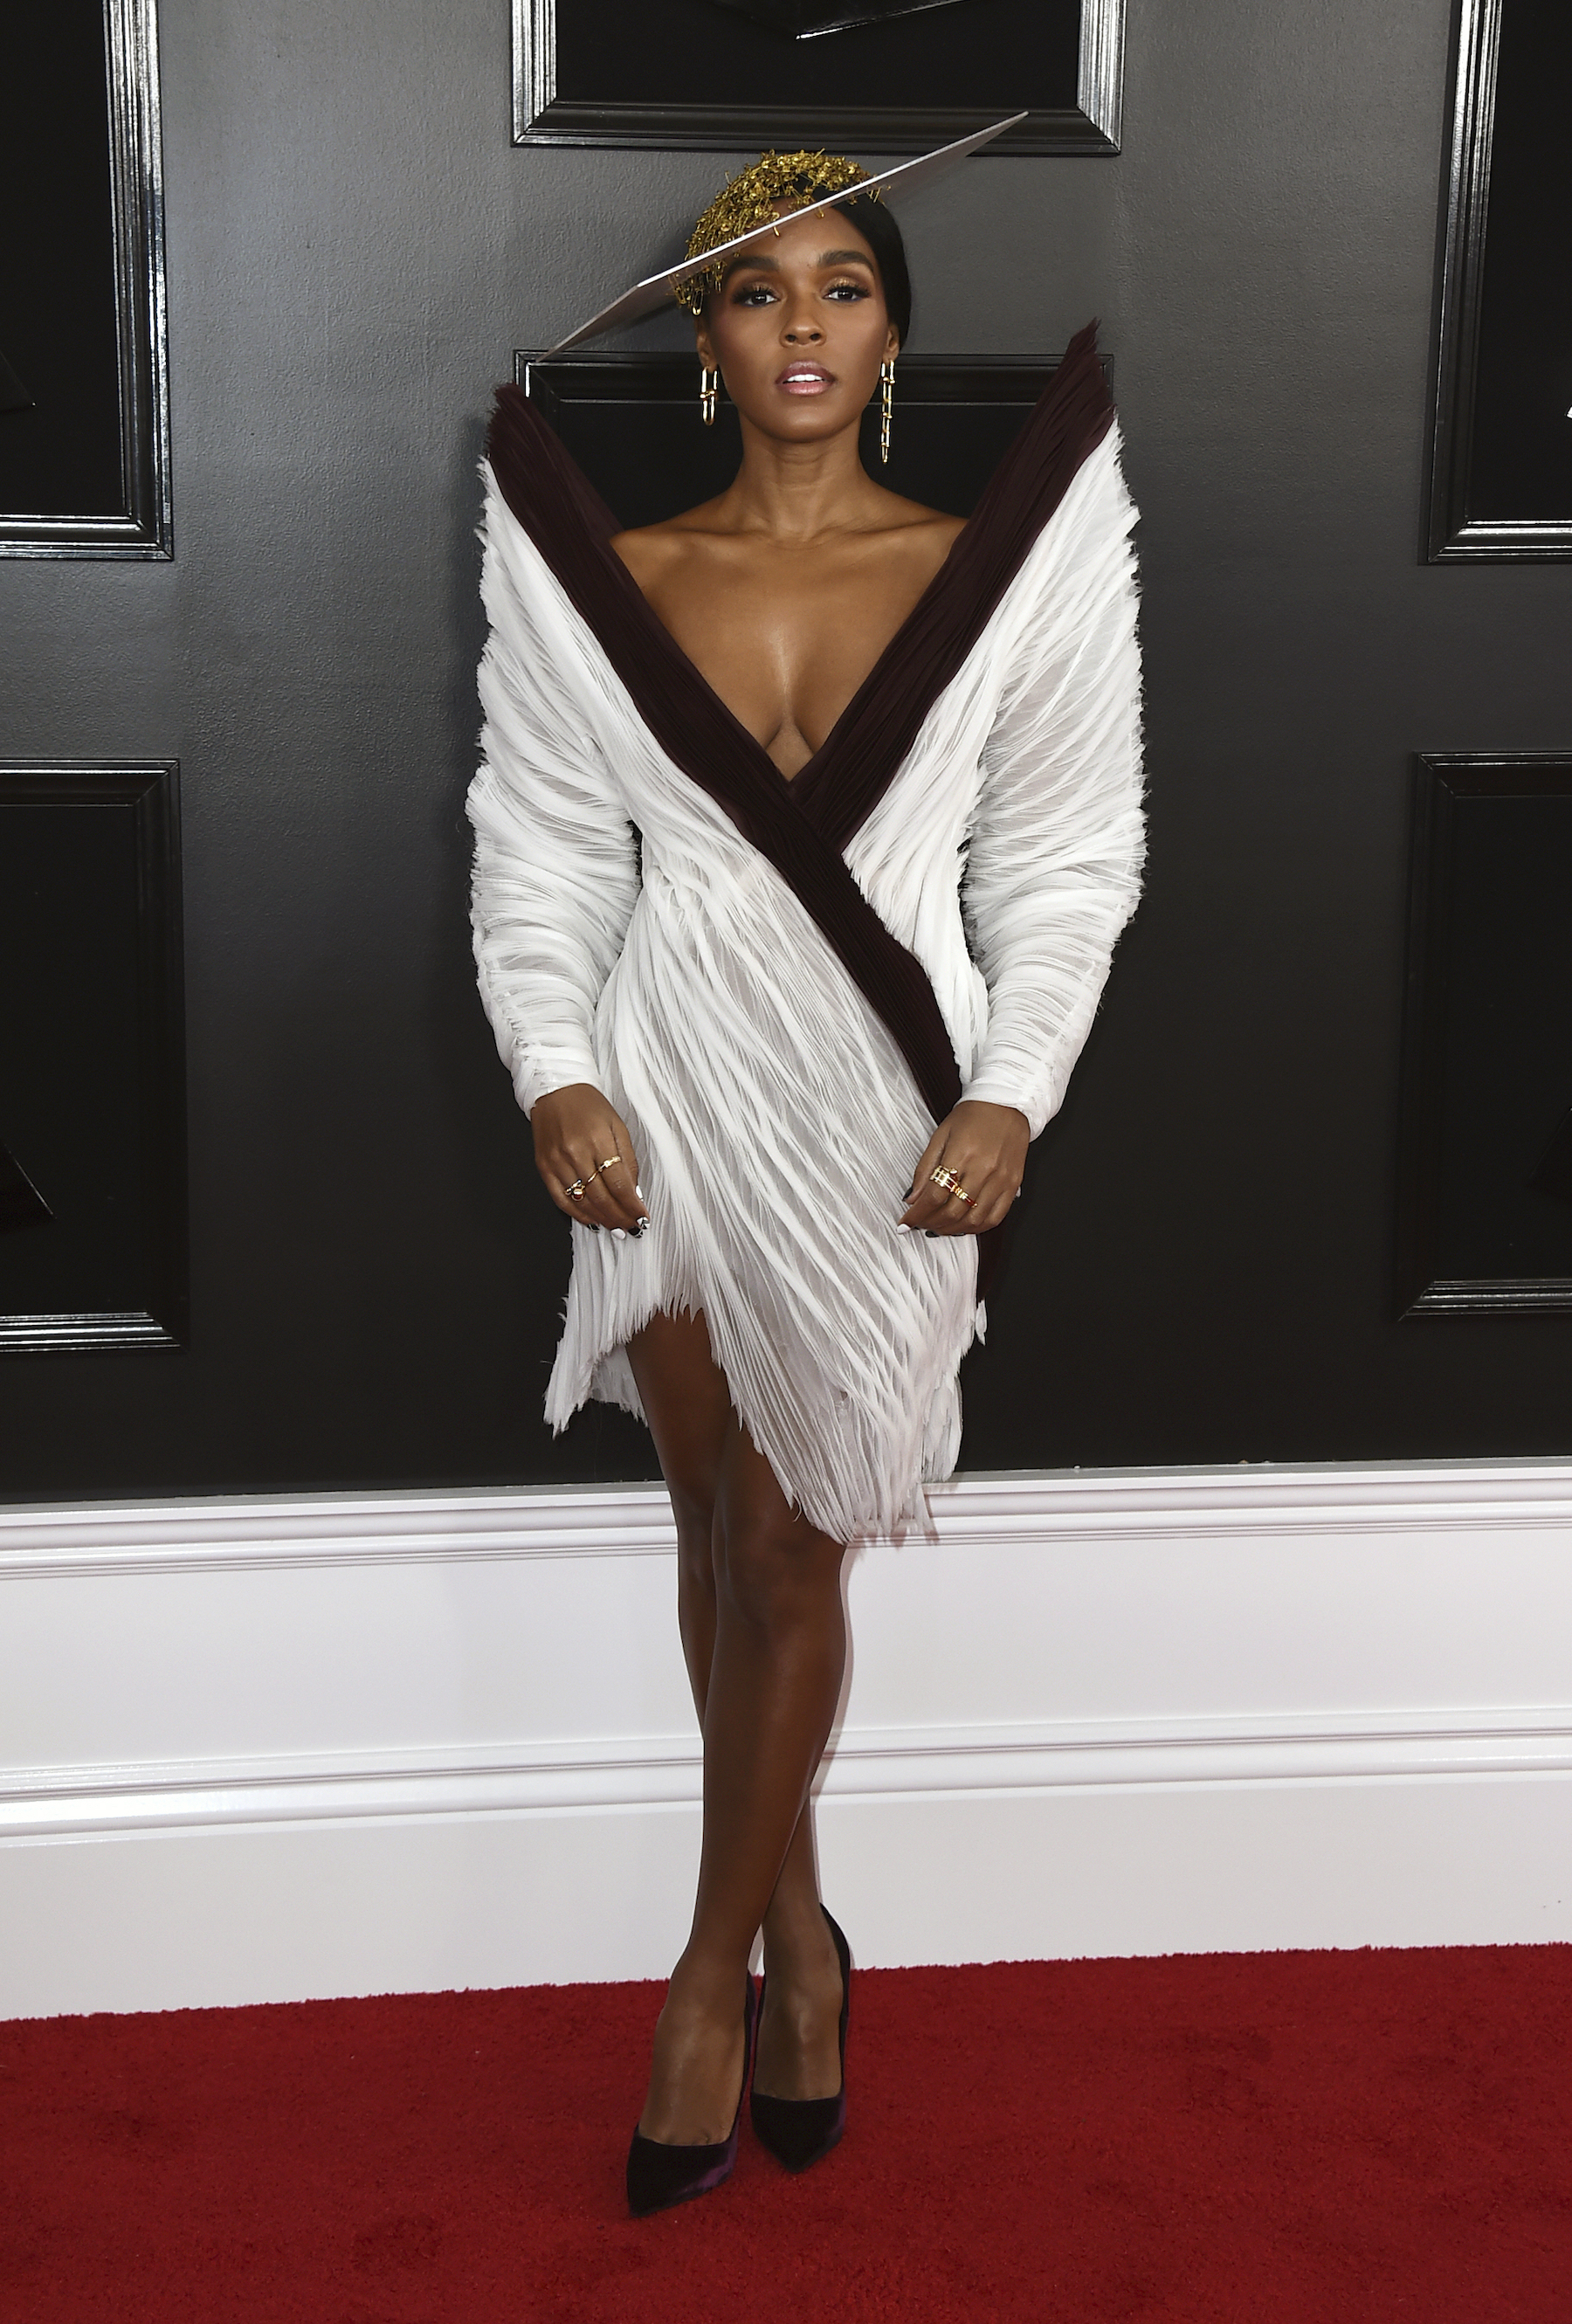 <div class='meta'><div class='origin-logo' data-origin='AP'></div><span class='caption-text' data-credit='Jordan Strauss/Invision/AP'>Janelle Monae arrives at the 61st annual Grammy Awards at the Staples Center on Sunday, Feb. 10, 2019, in Los Angeles.</span></div>